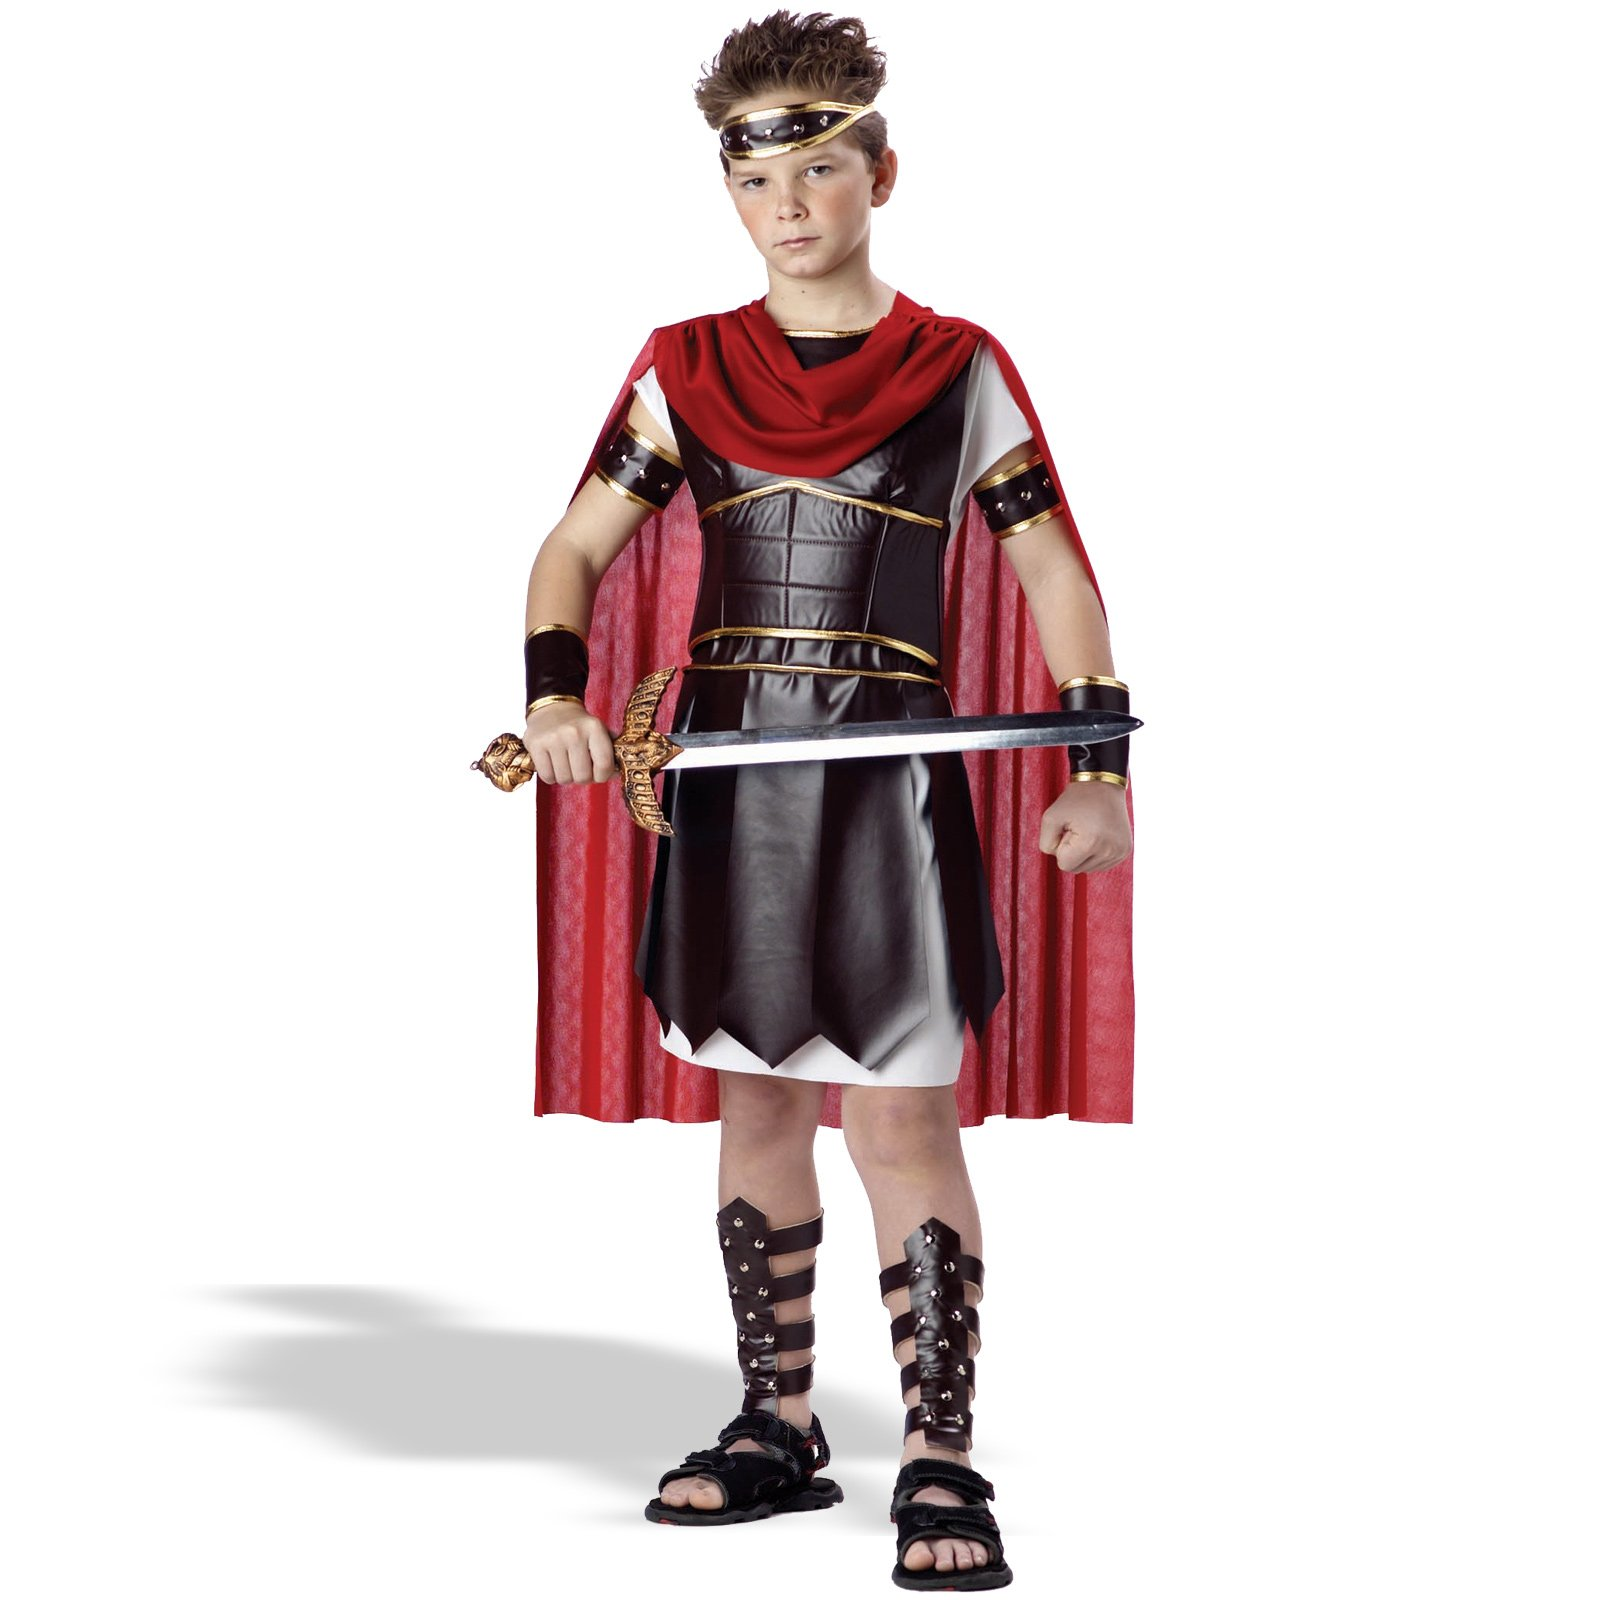 Pictures of gladiators for kids